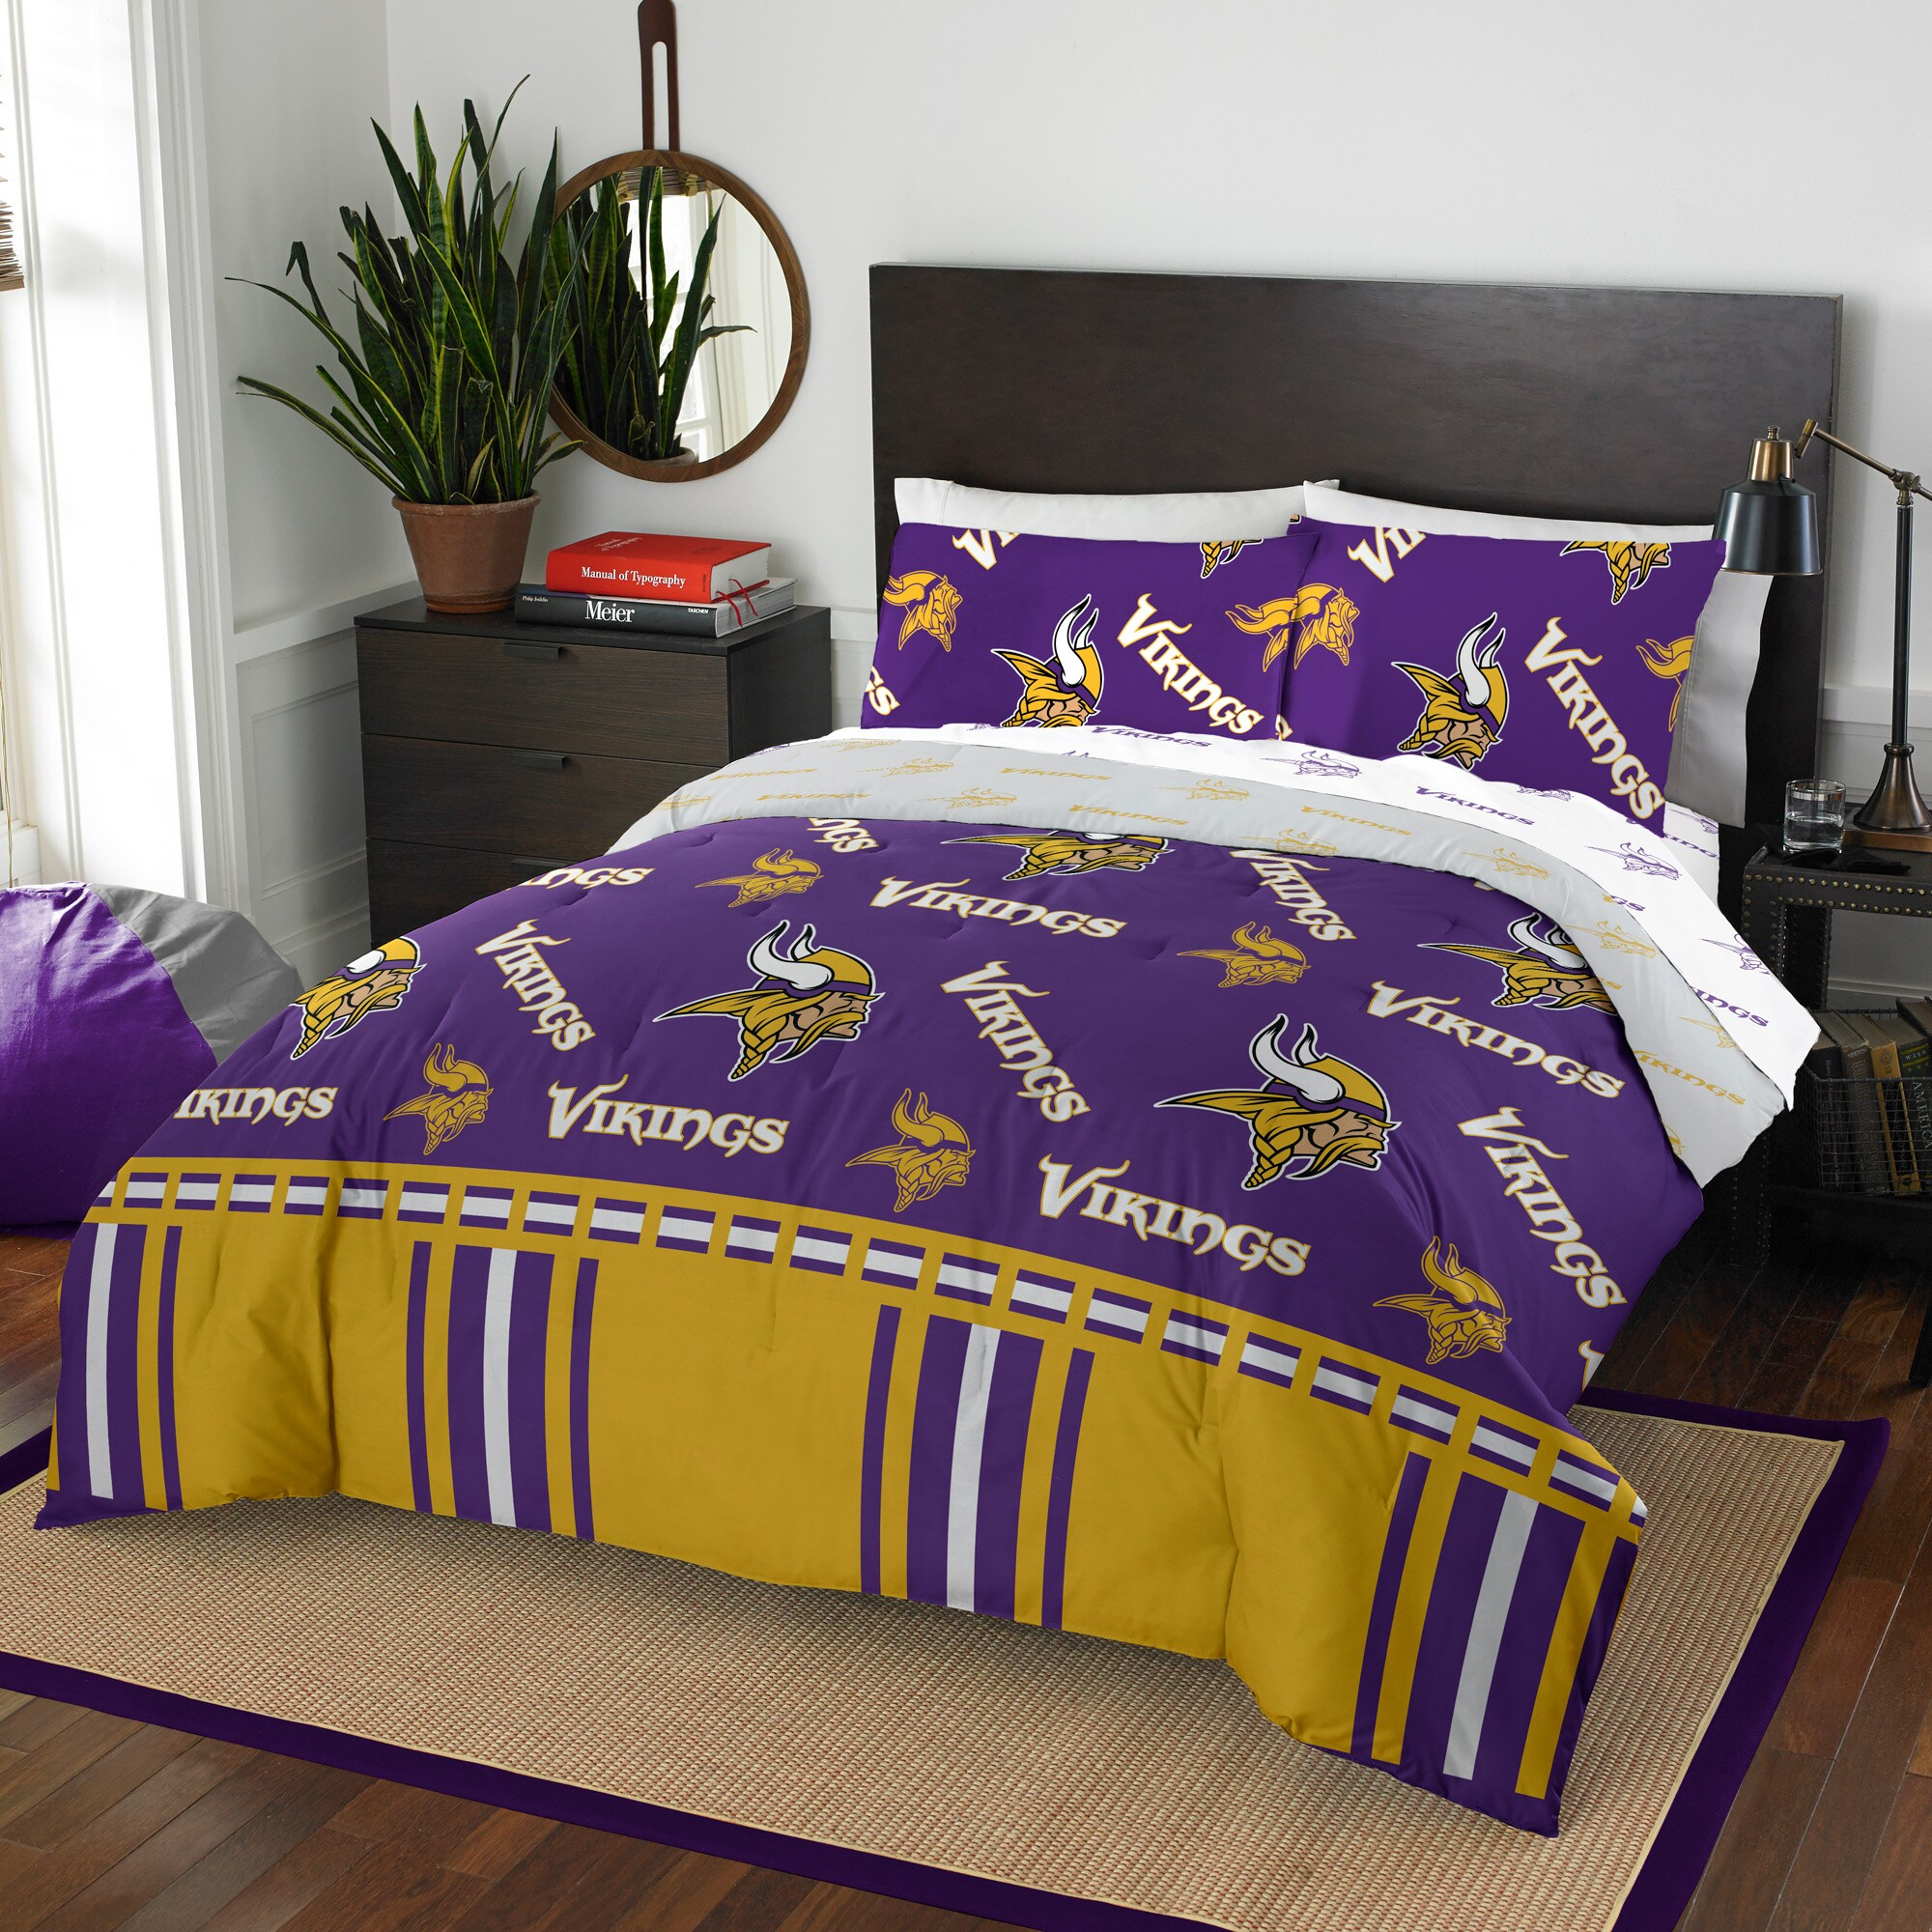 Minnesota Vikings The Northwest Company 5-Piece Full Bed in a Bag Set